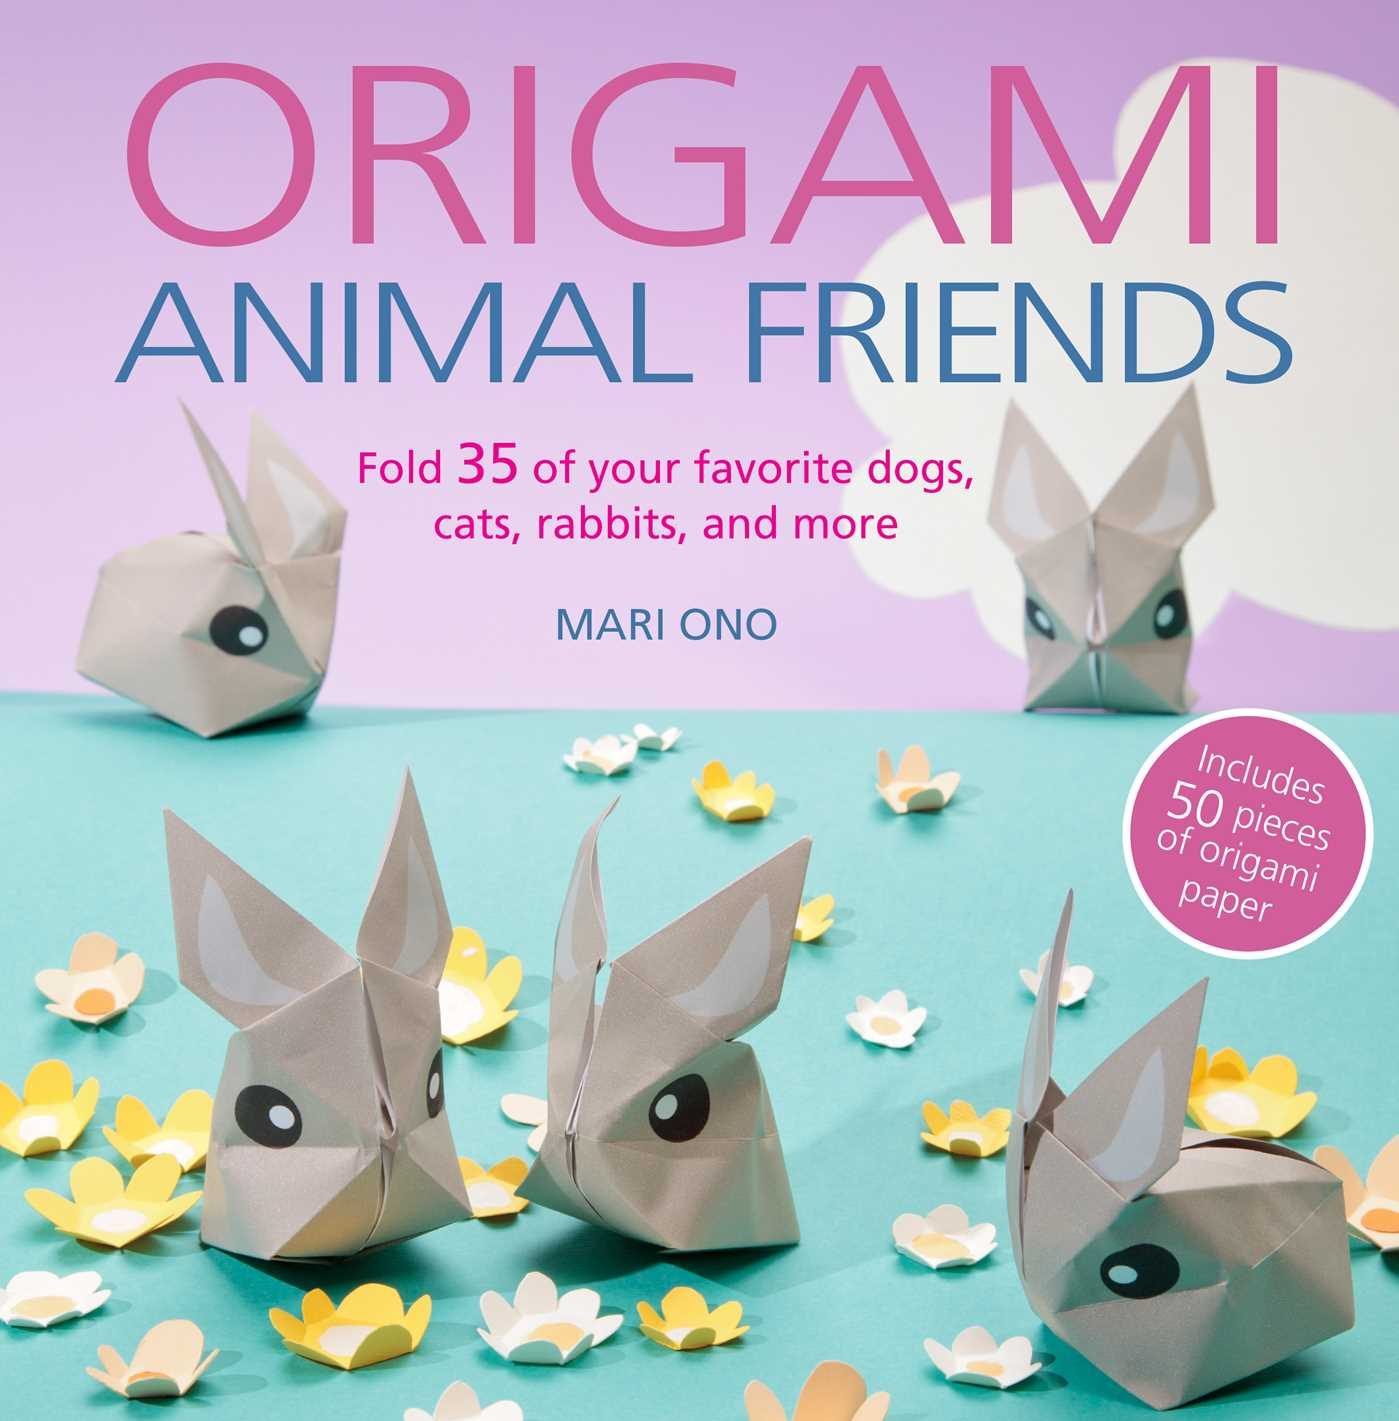 Origami Animal Friends Book By Mari Ono Official Publisher Page